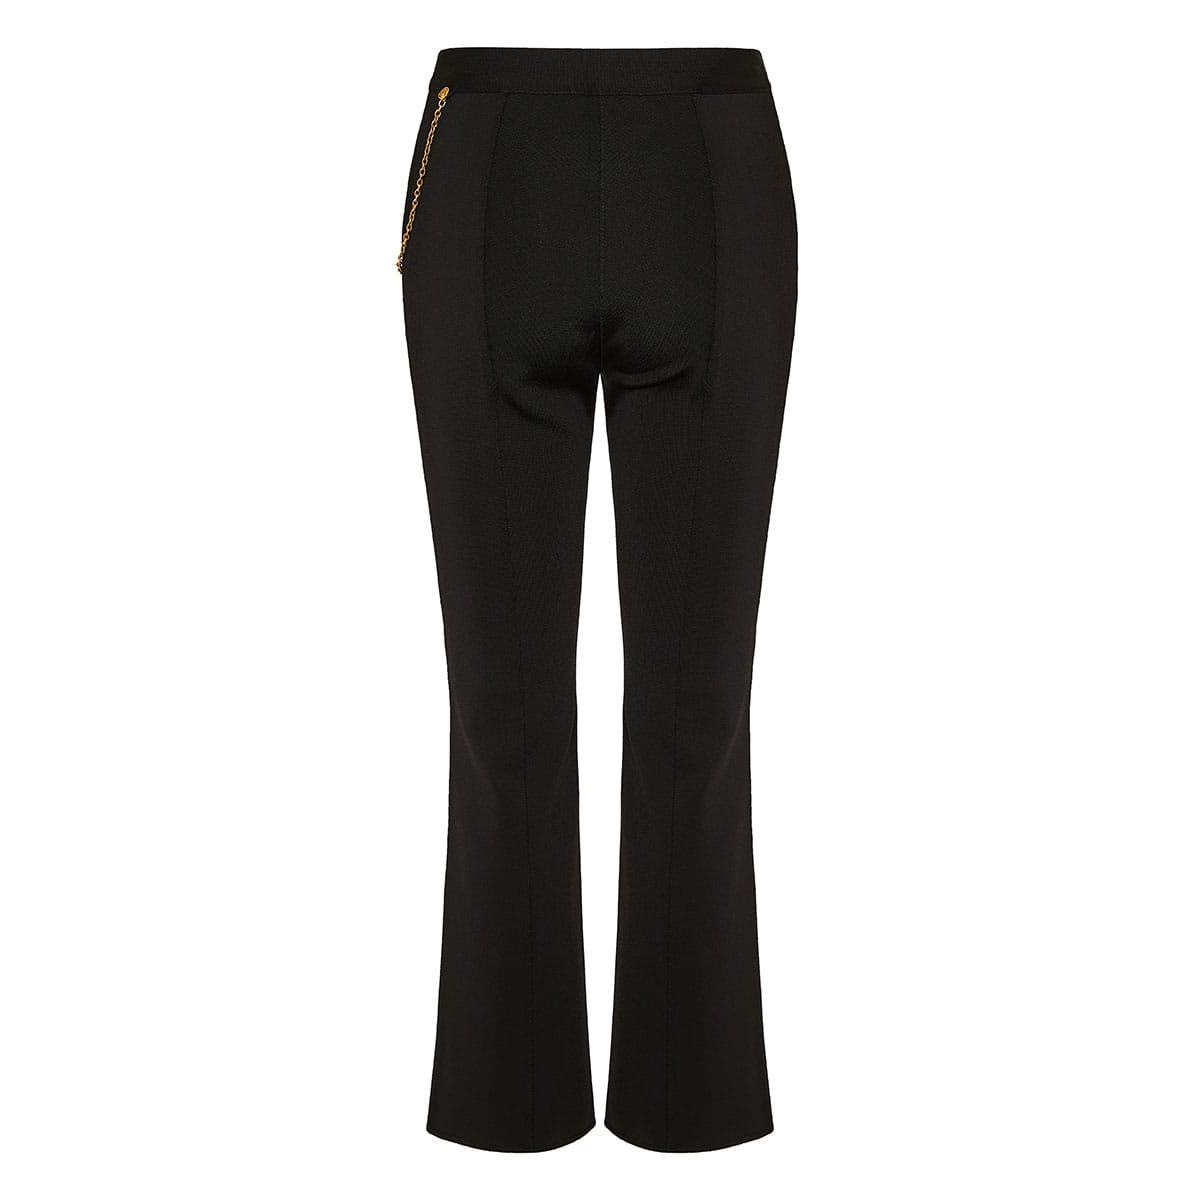 Chain-embellished cropped flared trousers